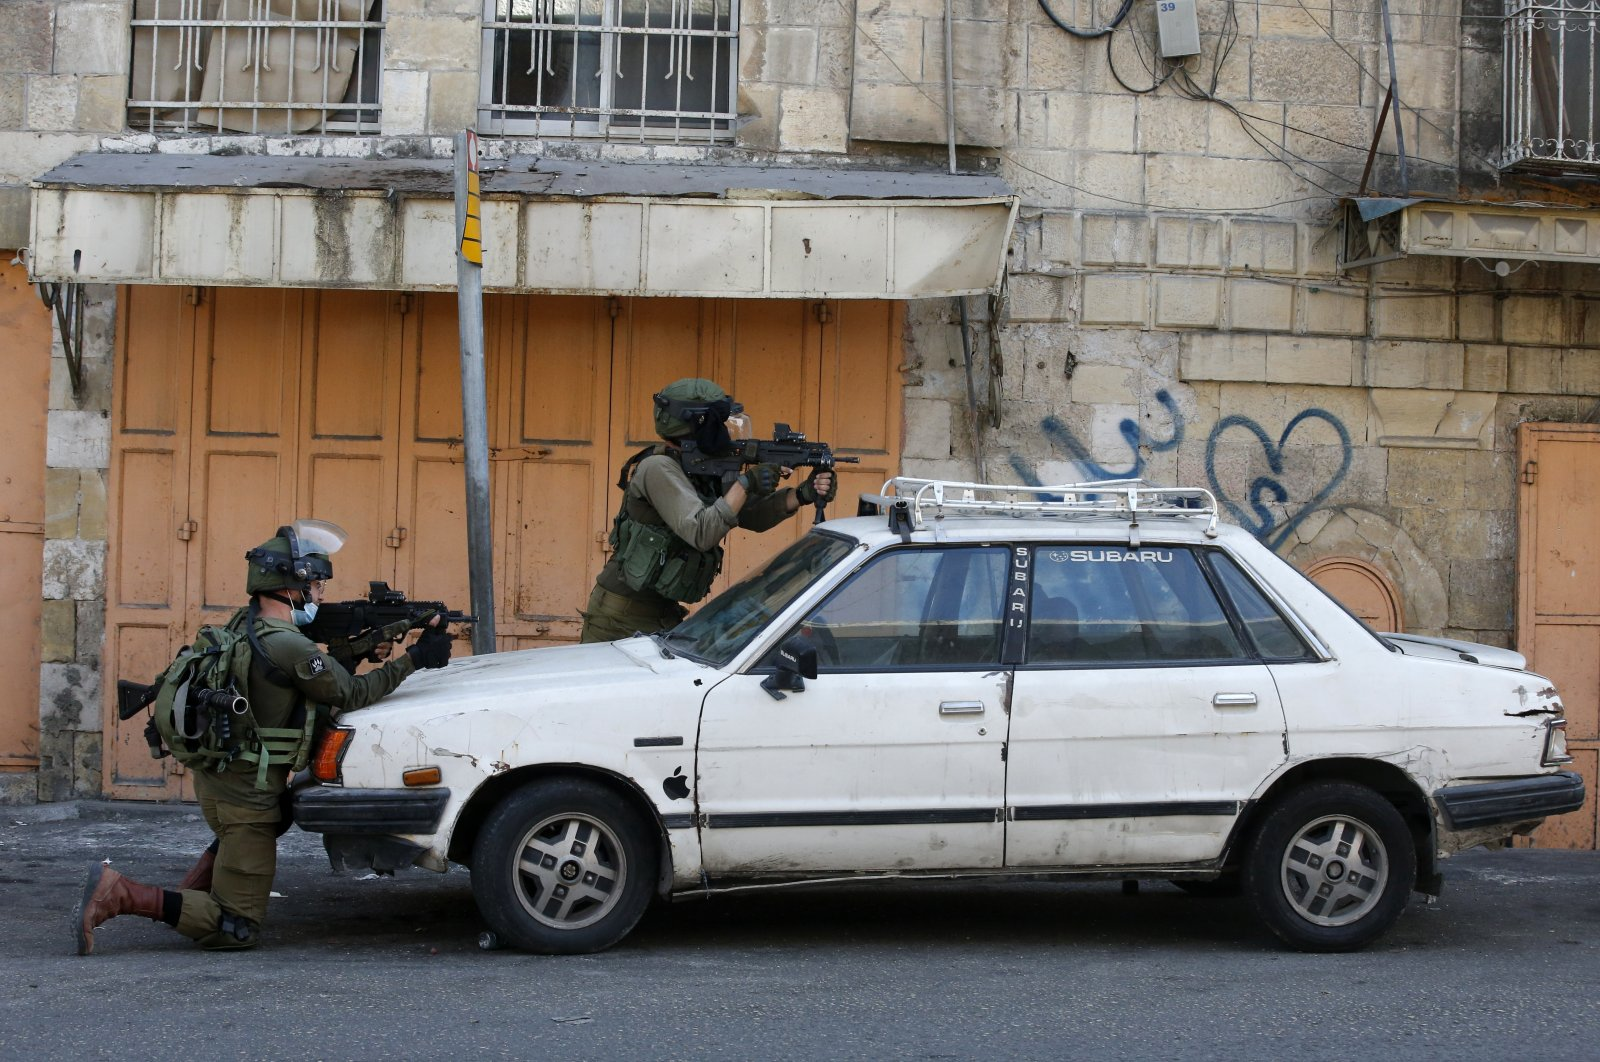 Israeli security forces aim their weapons amid clashes with Palestinian protesters in the Israeli-occupied West Bank town of Hebron, Sept. 25, 2020. (AFP Photo)